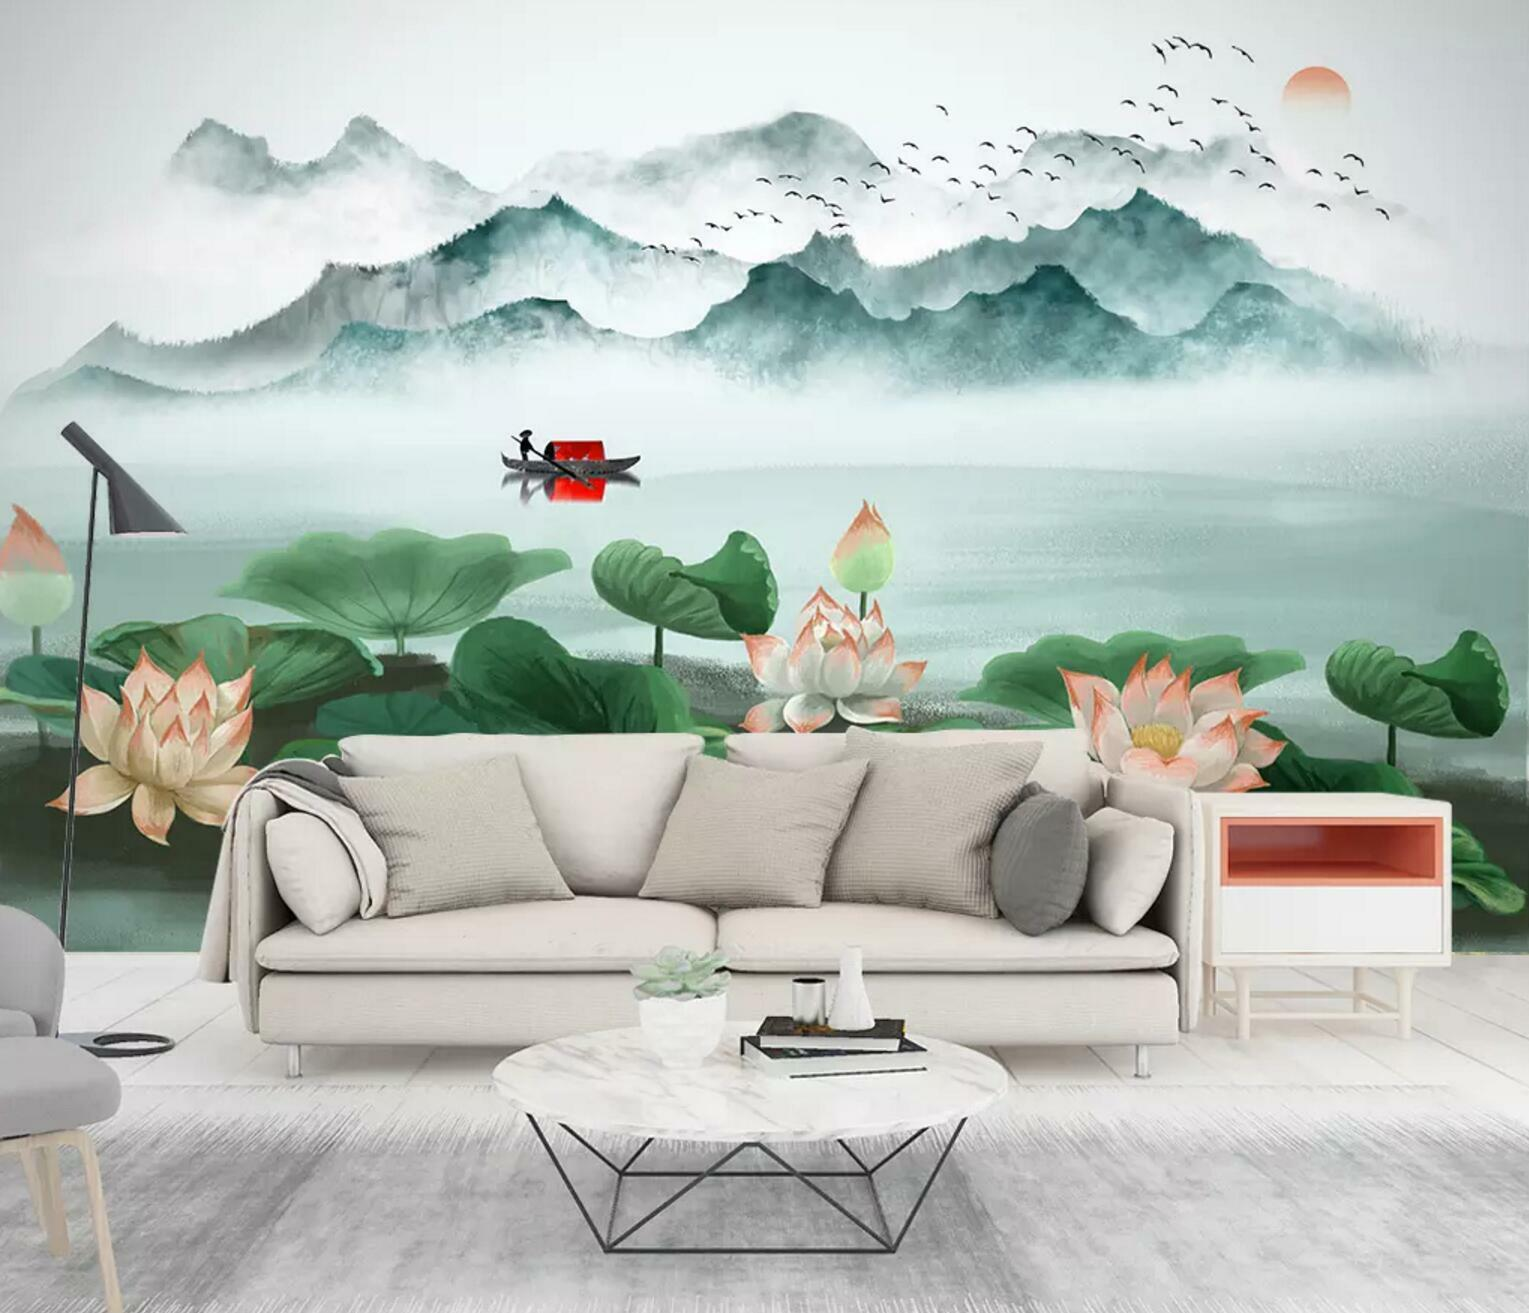 3D Lake Lotus Leaf 71 Wall Paper Exclusive MXY Wallpaper Mural Decal Indoor Wall